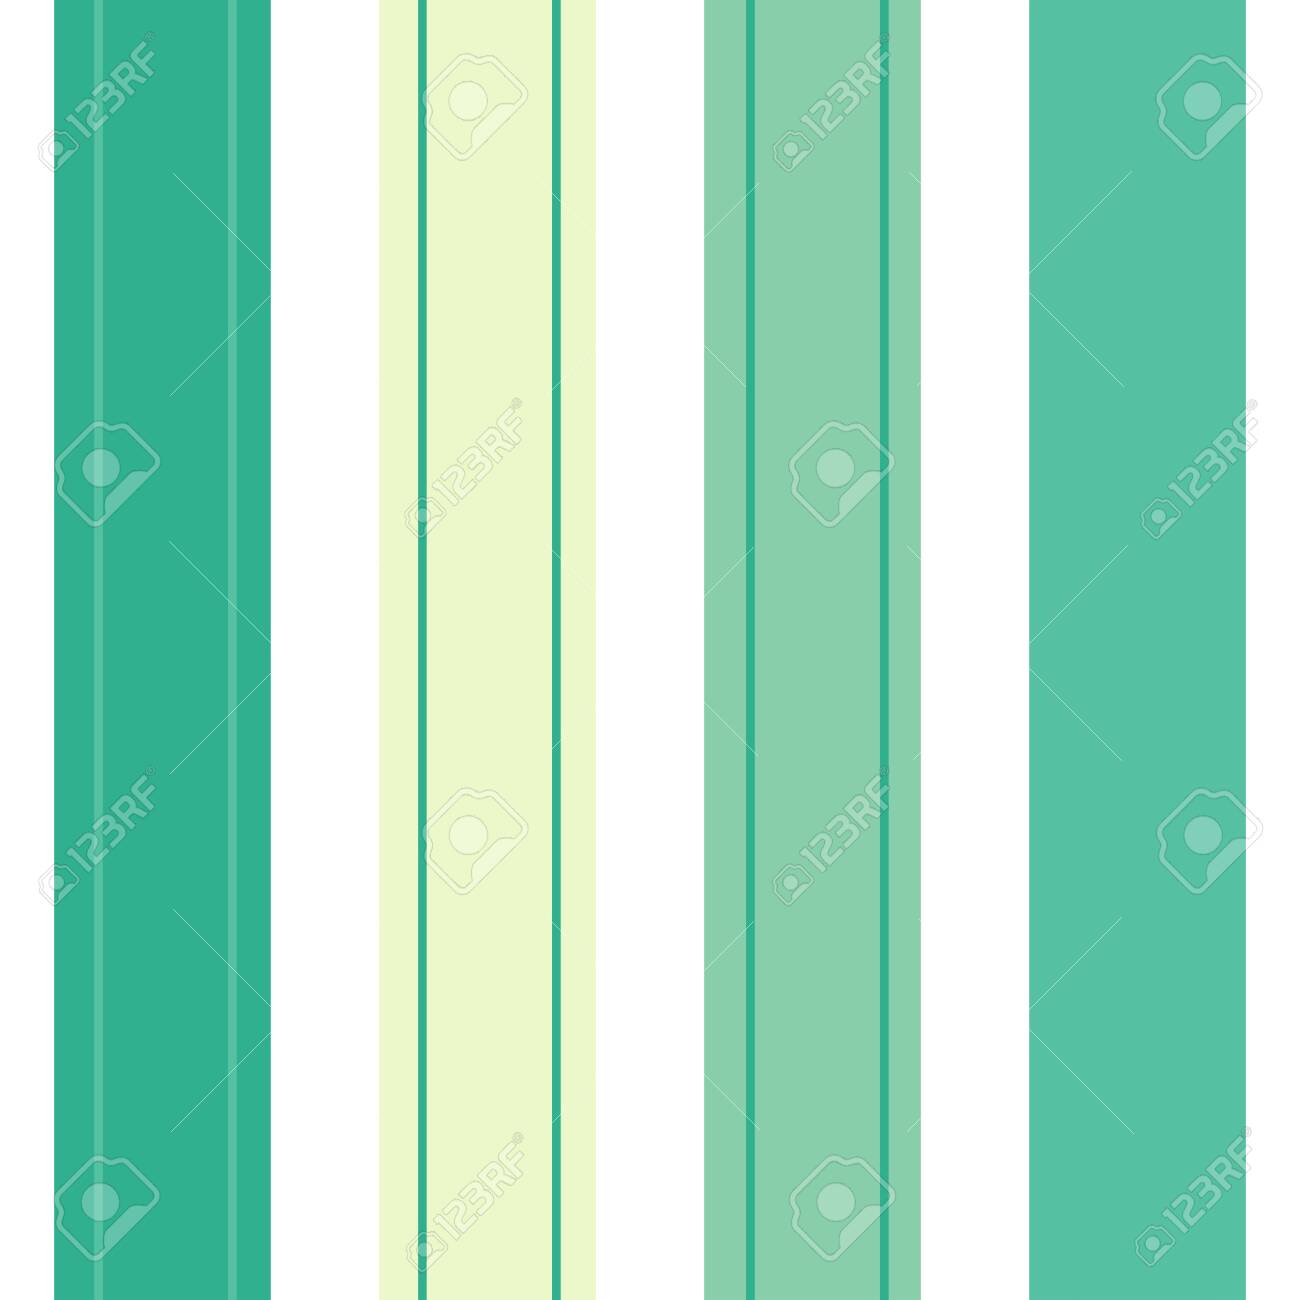 Vertical Stripes Seamless Pattern Cool Lines Endless Design Royalty Free Cliparts Vectors And Stock Illustration Image 140727093